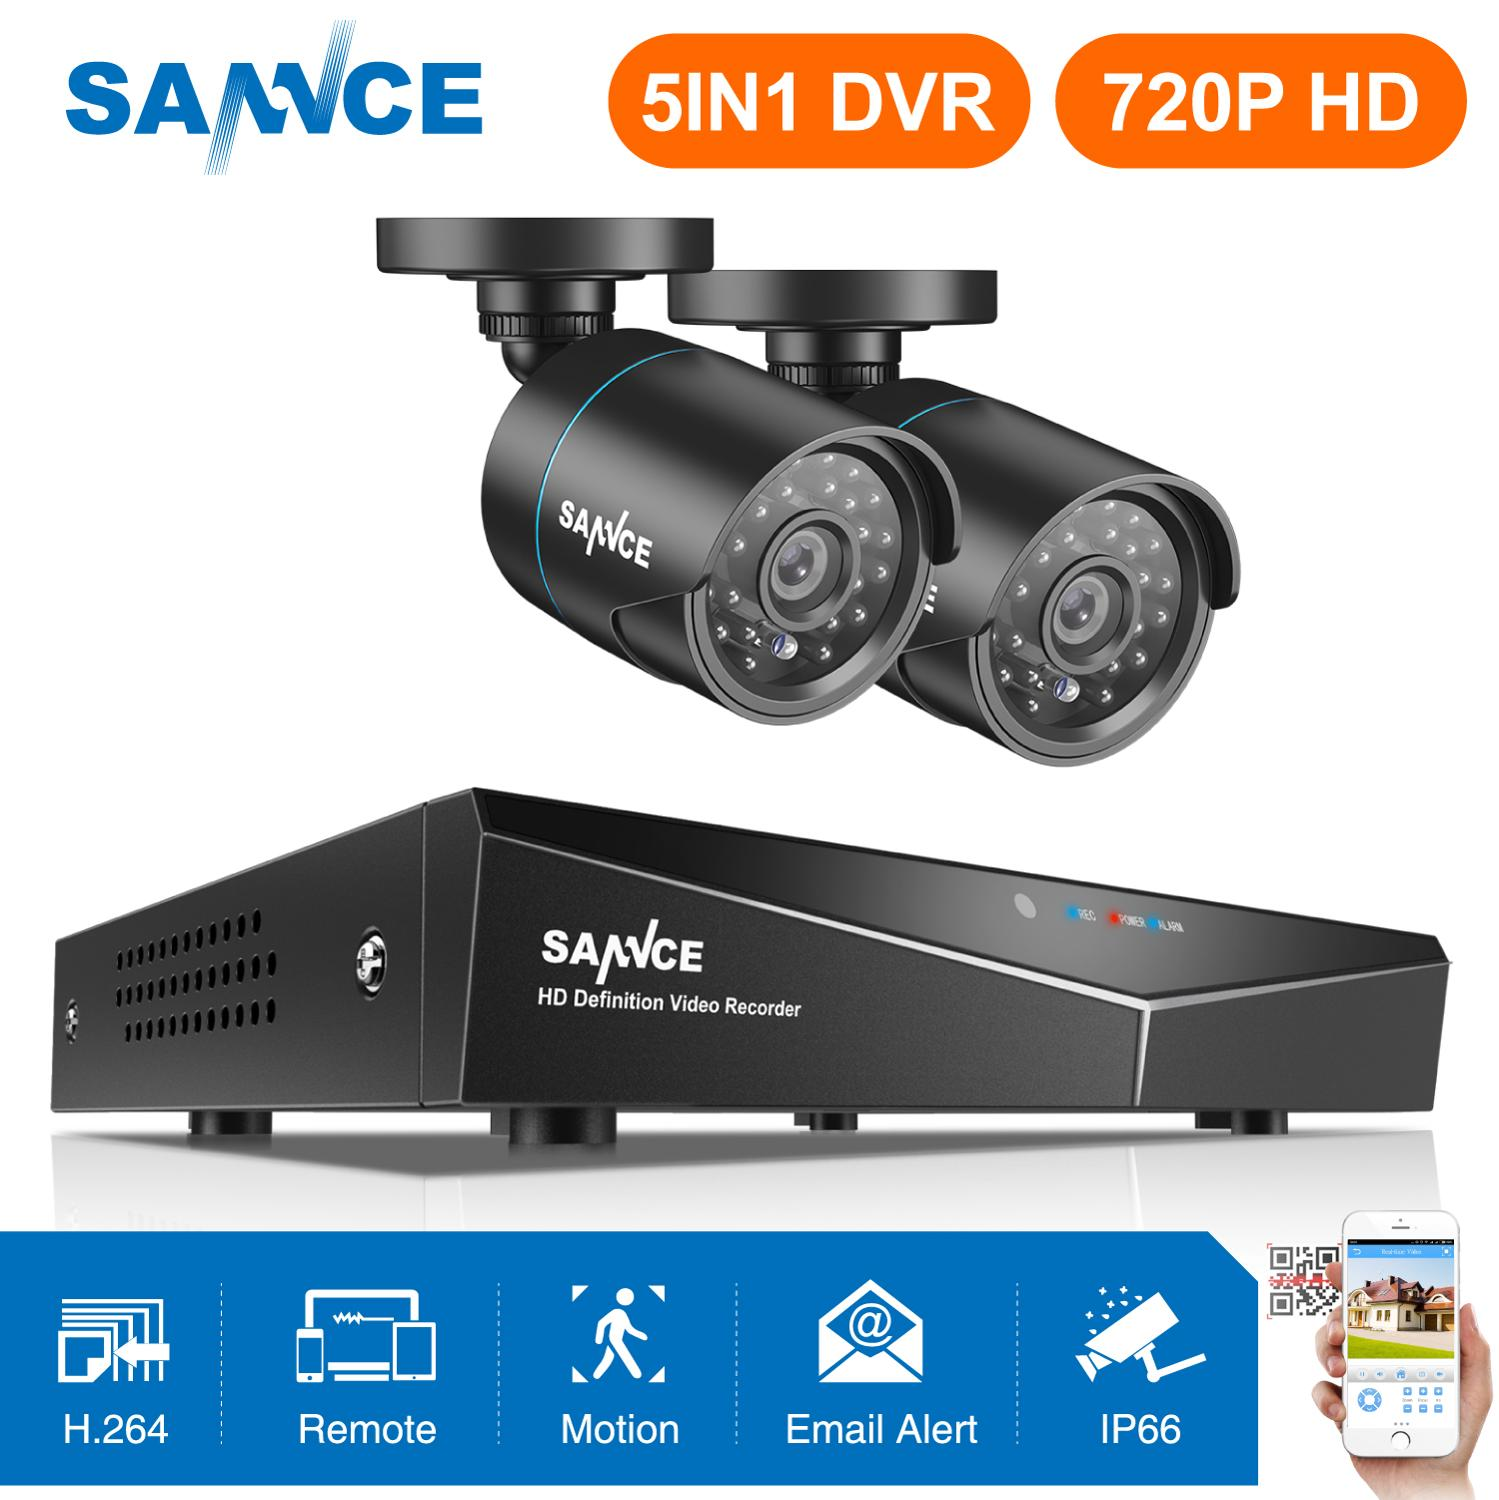 SANNCE 4CH 5IN1 720P Home Security System 1080N HDMI DVR With 2PCS 100W TVI CCTV Camera Outdoor Weatherproof Surveillance KitSANNCE 4CH 5IN1 720P Home Security System 1080N HDMI DVR With 2PCS 100W TVI CCTV Camera Outdoor Weatherproof Surveillance Kit